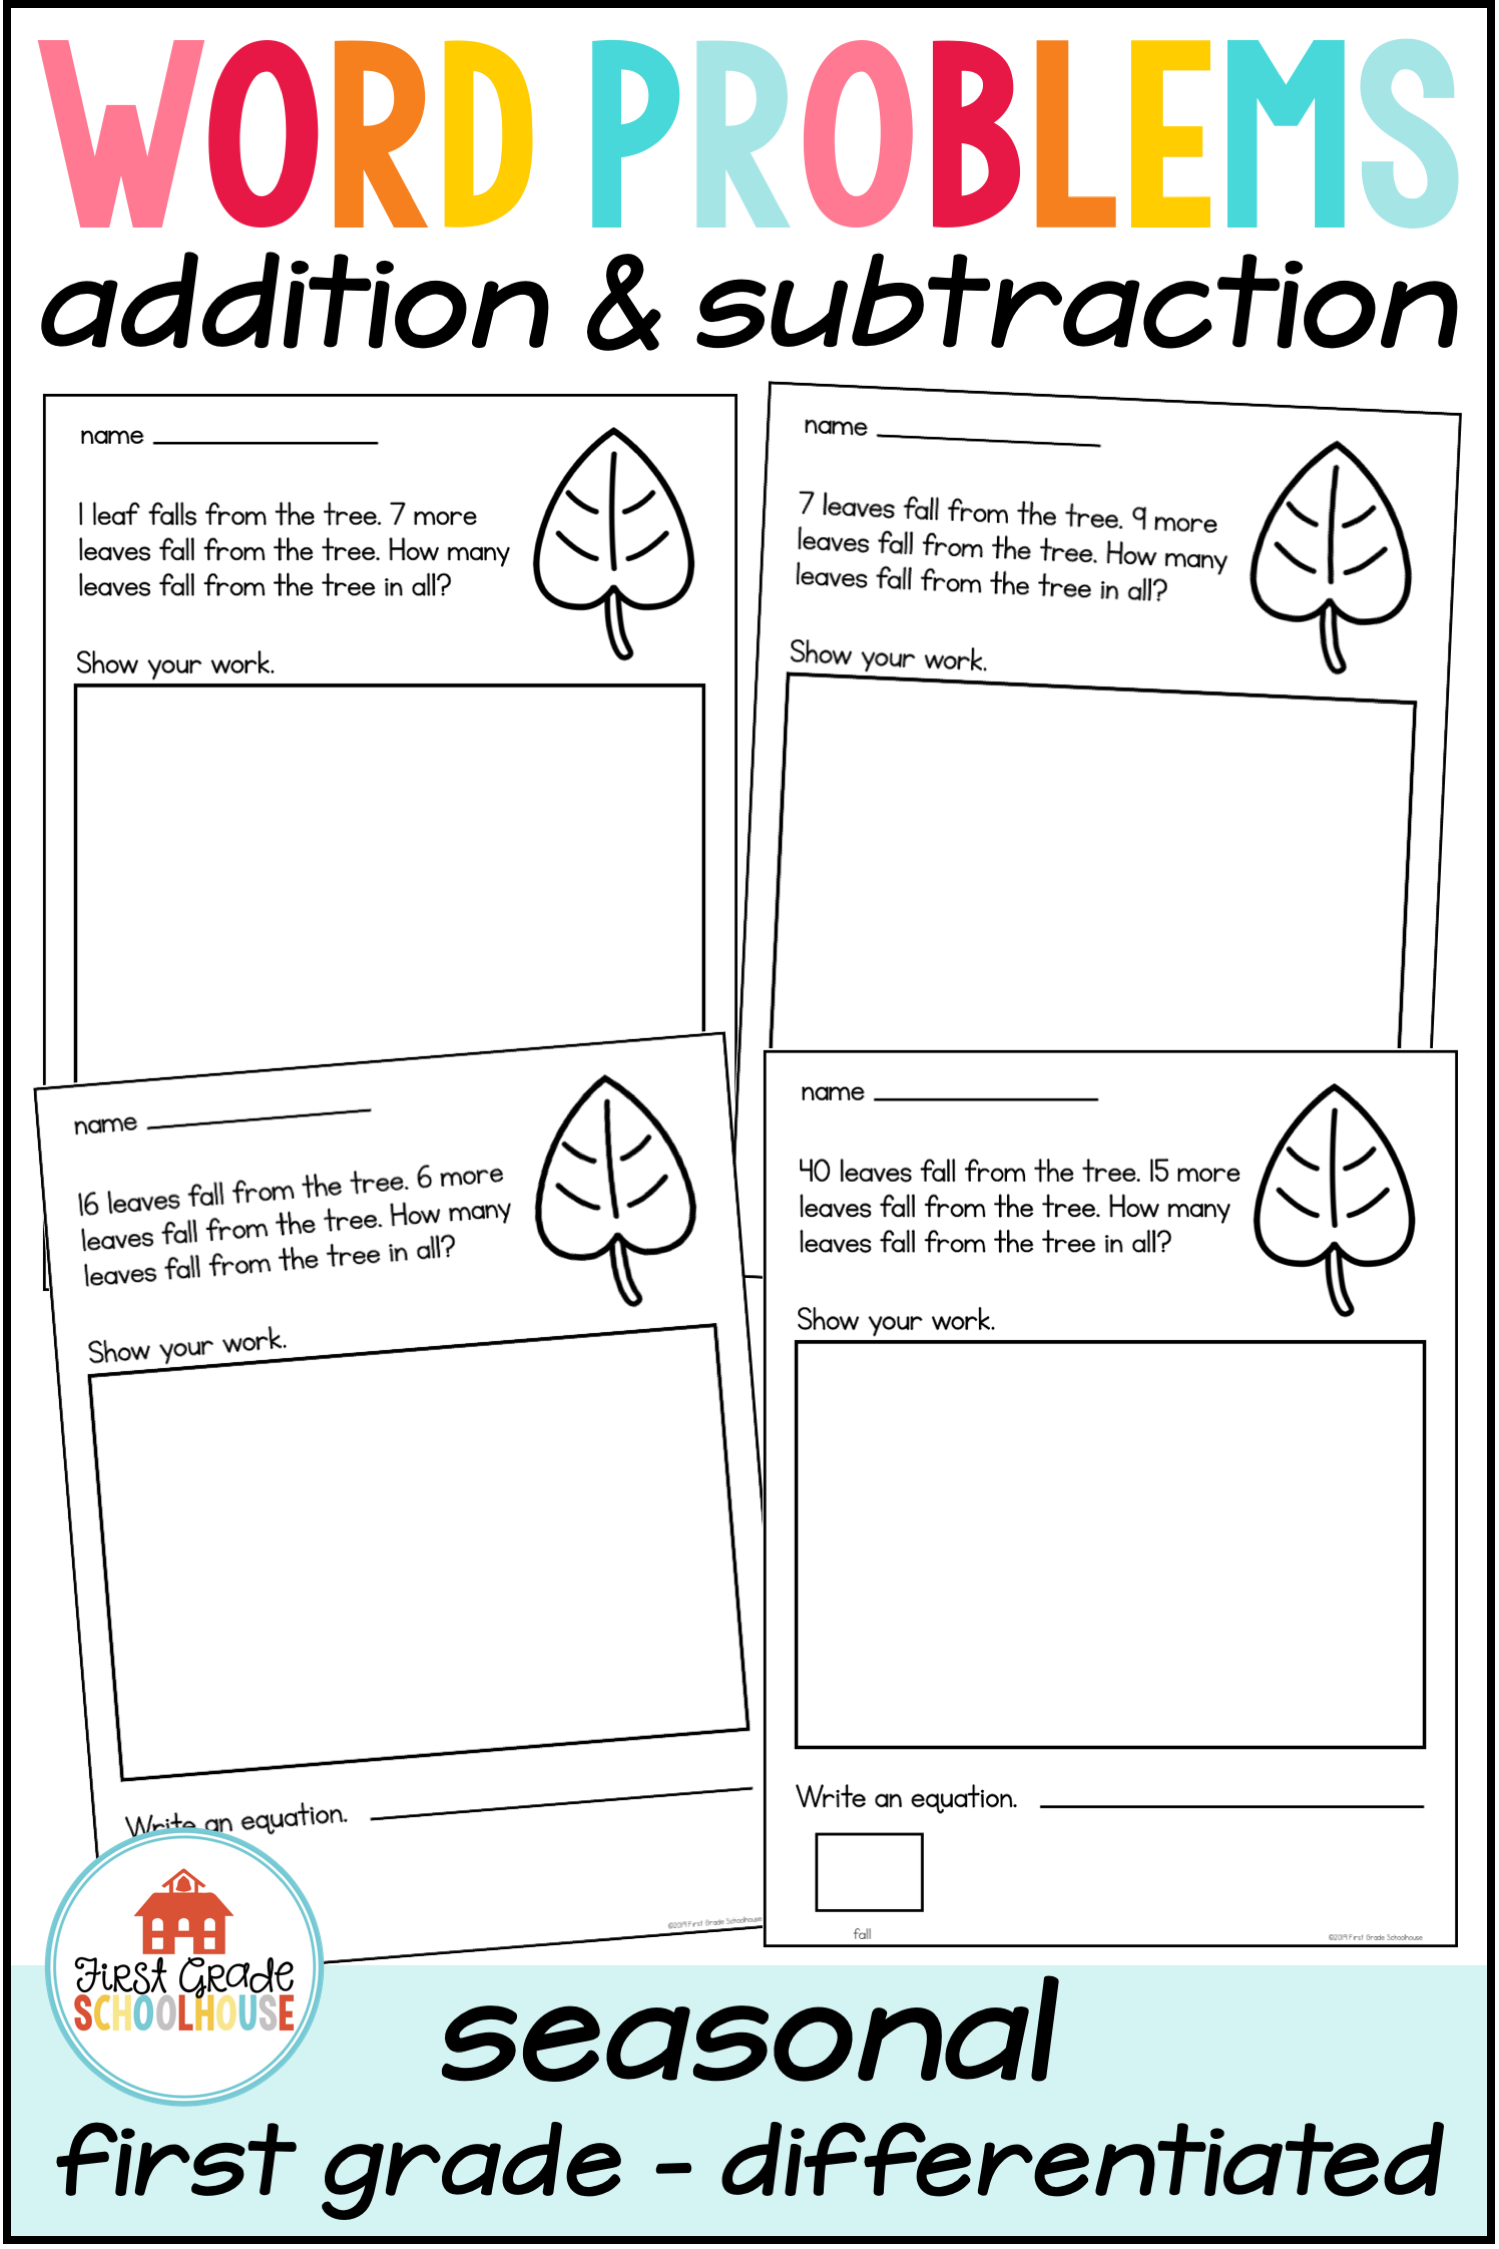 Word Problems Addition And Subtraction